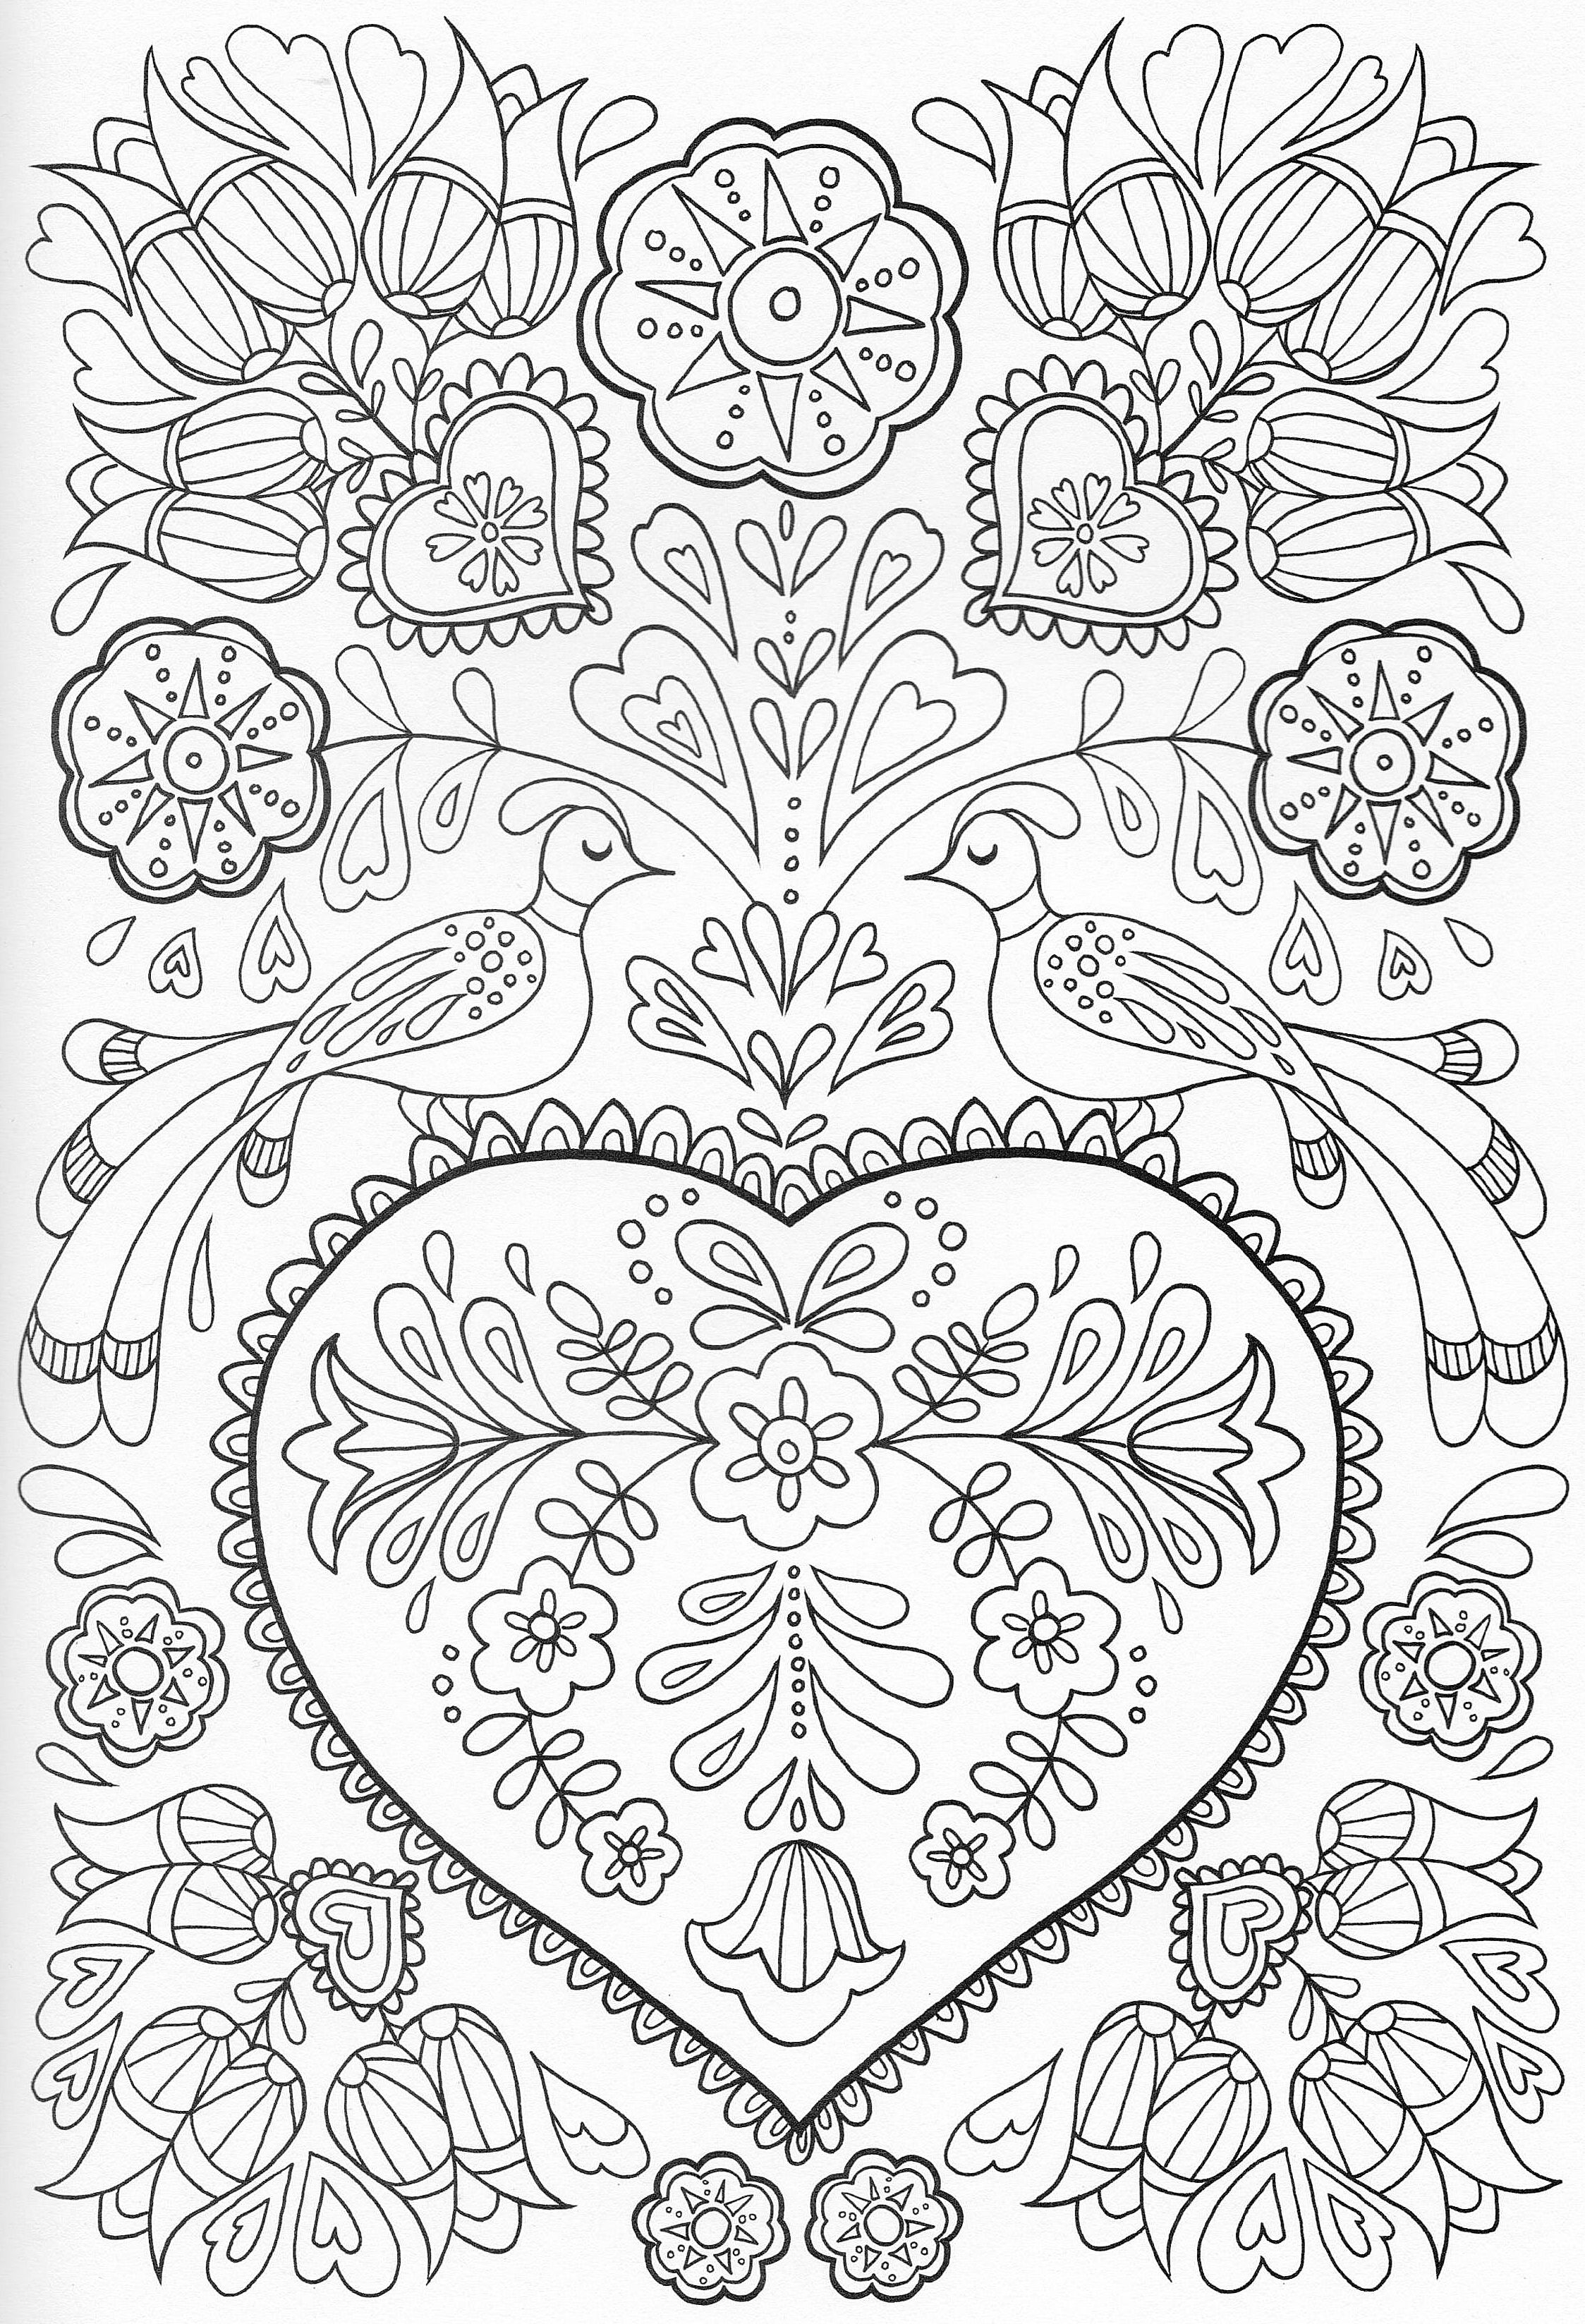 Scandinavian Coloring Book Pg 41 | Color pages, Stencils ...